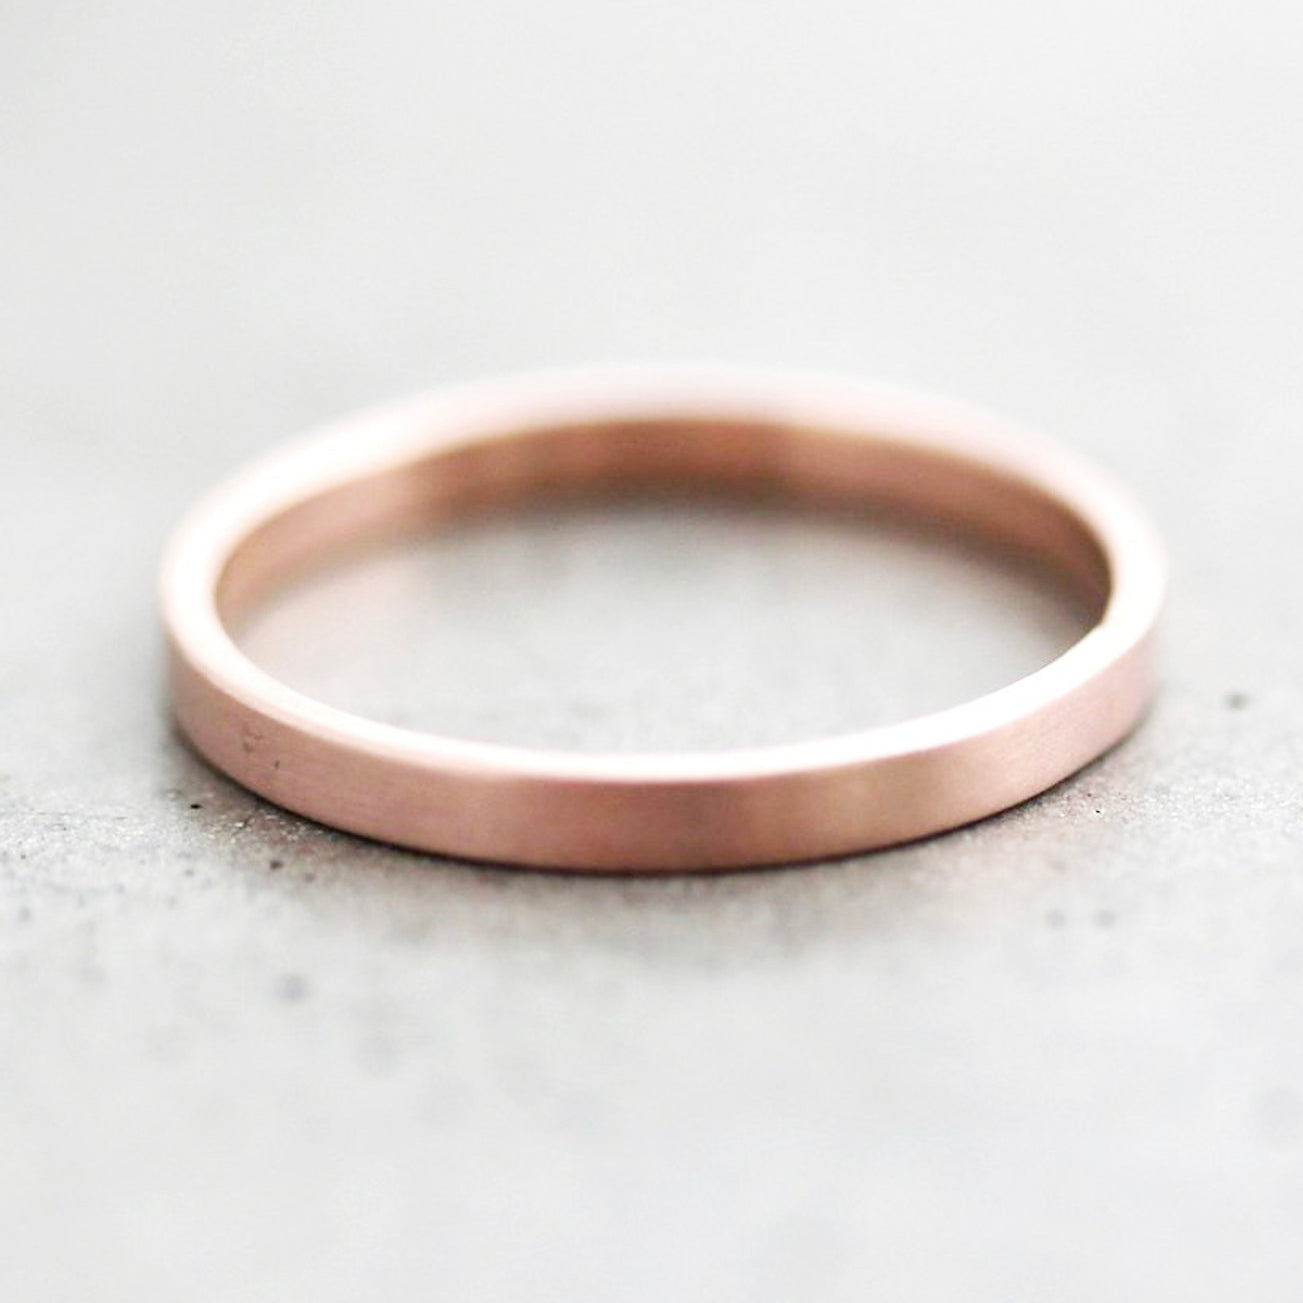 14k Gold Wedding Band 1.5mm 2mm 2.5mm 3mm - Unisex